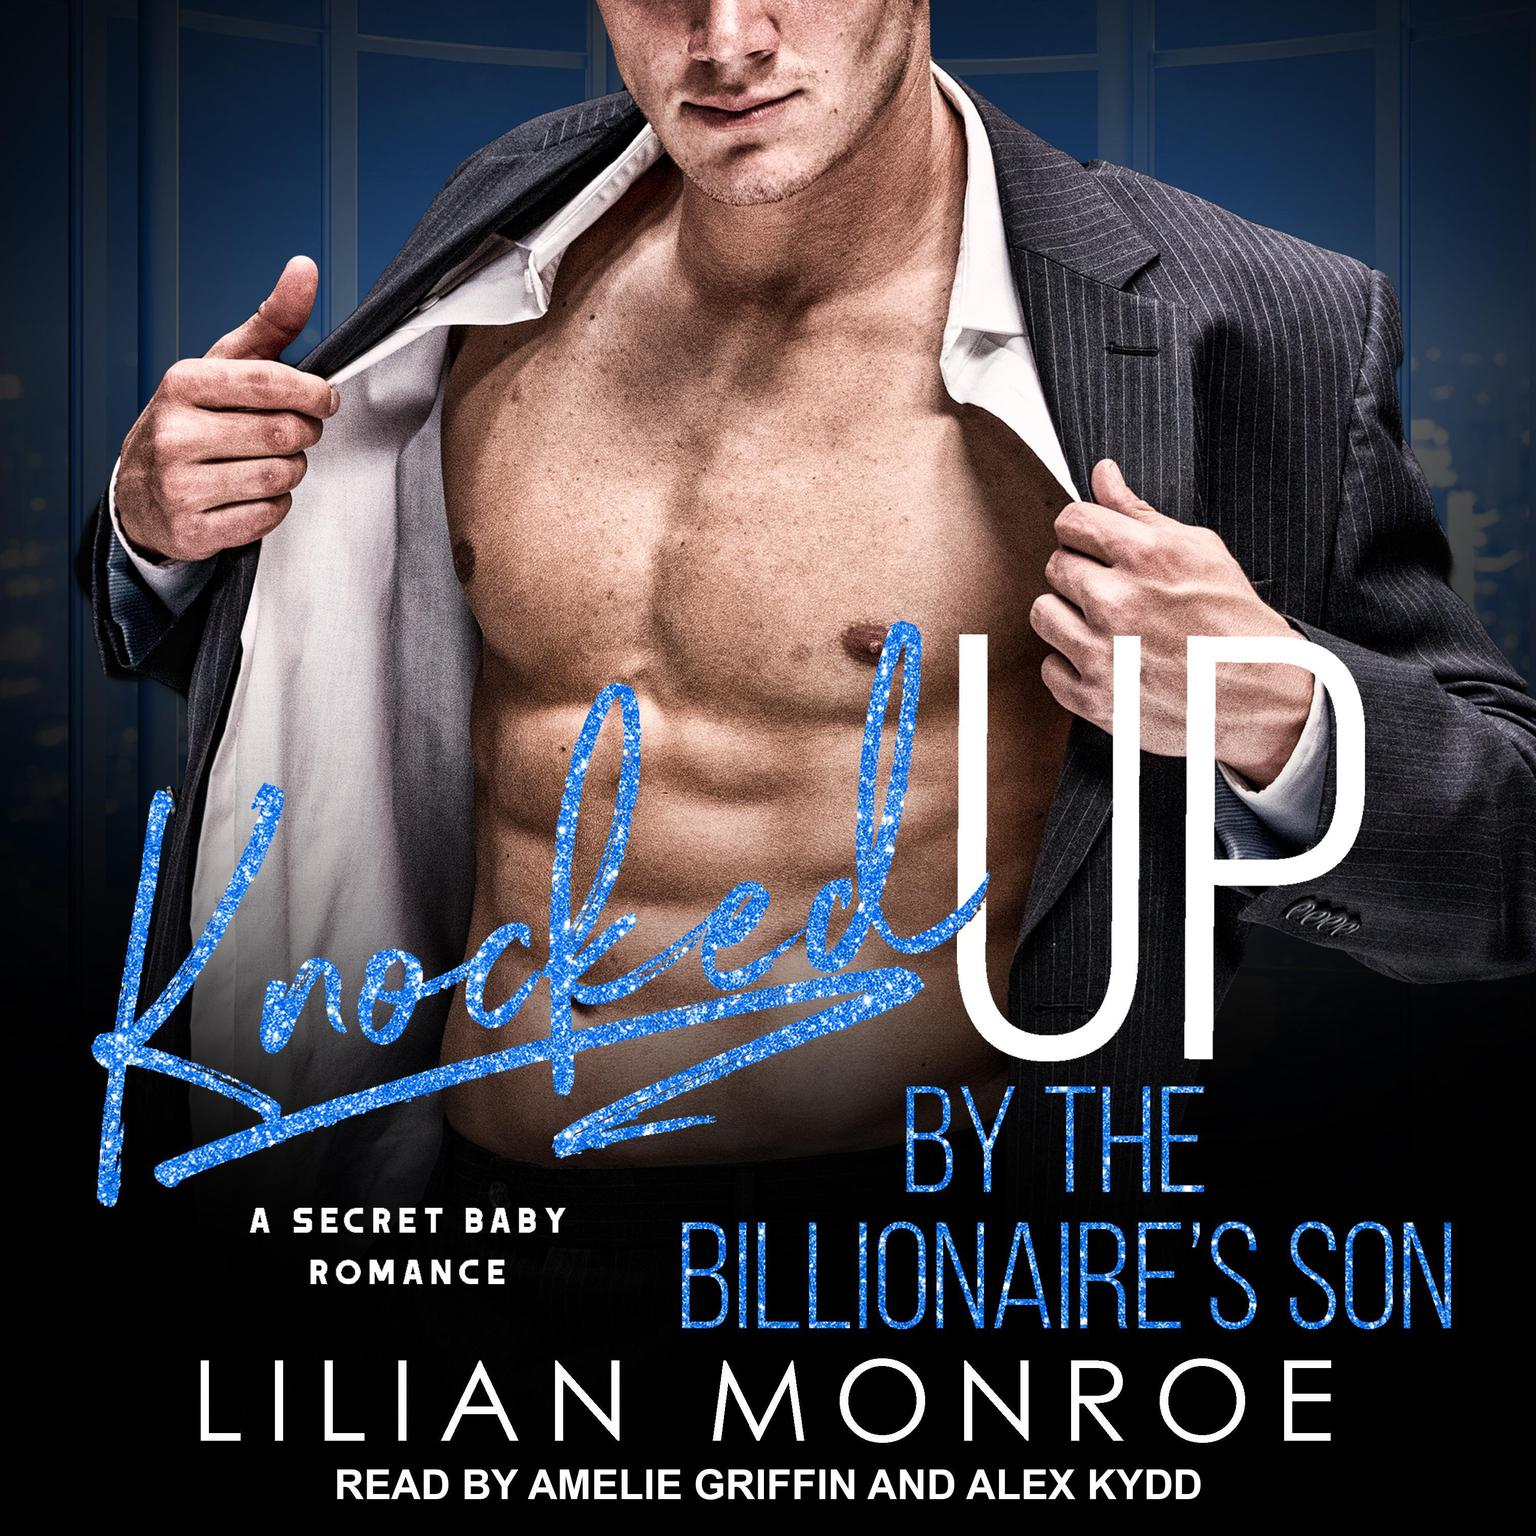 Printable Knocked Up by the Billionaire's Son Audiobook Cover Art